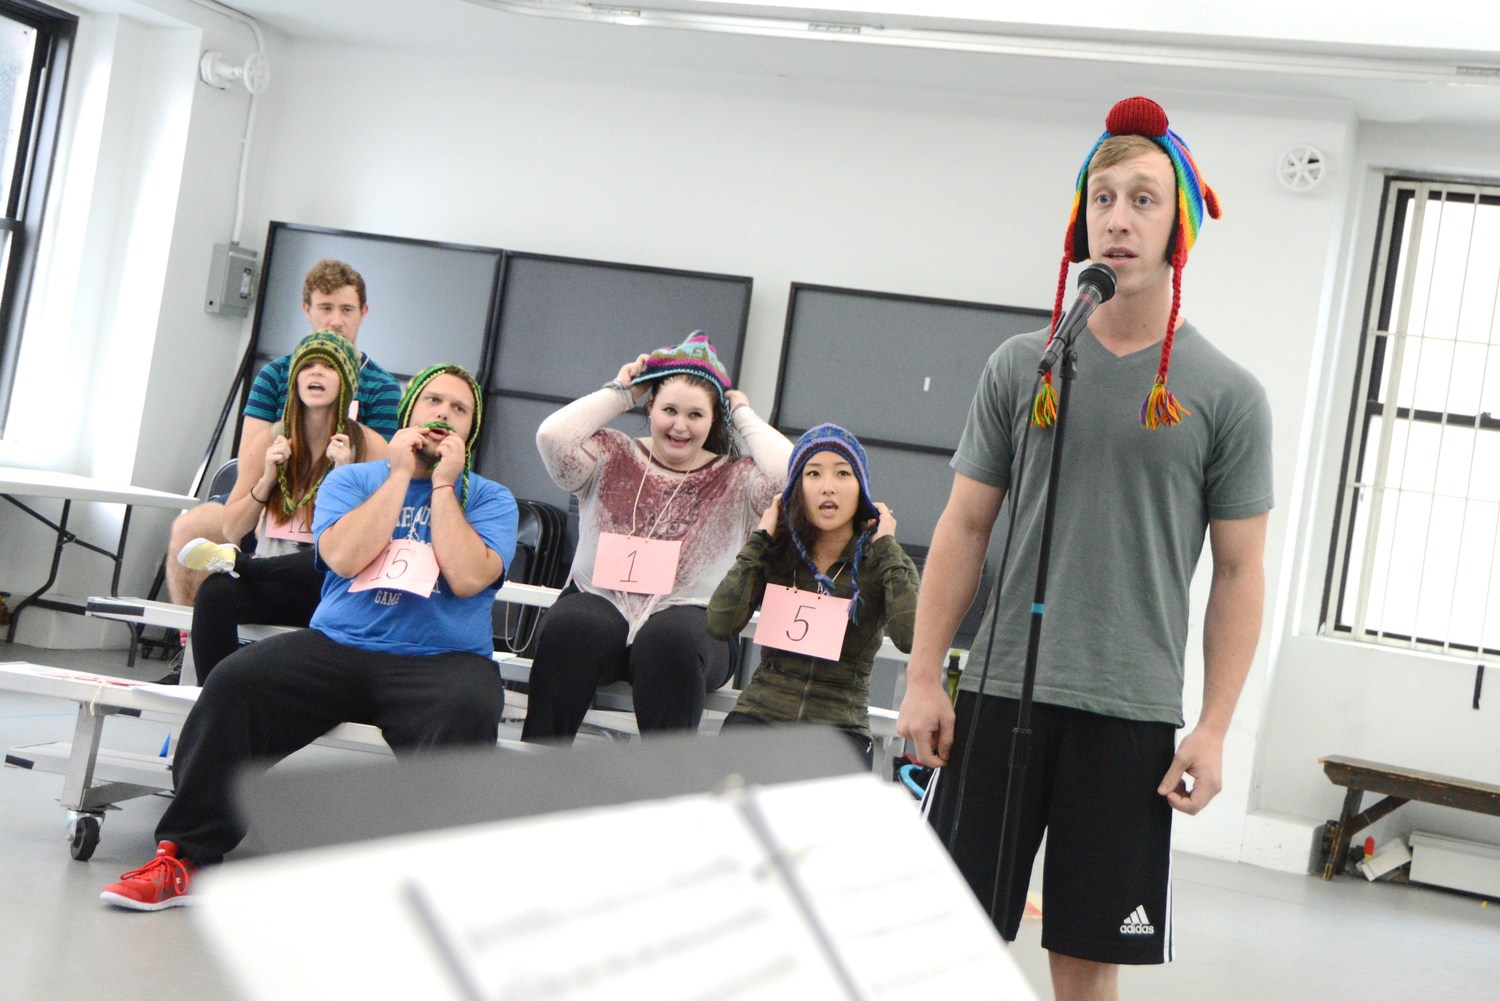 Cast in 1st week of rehearsals - Behind the scenes photographs